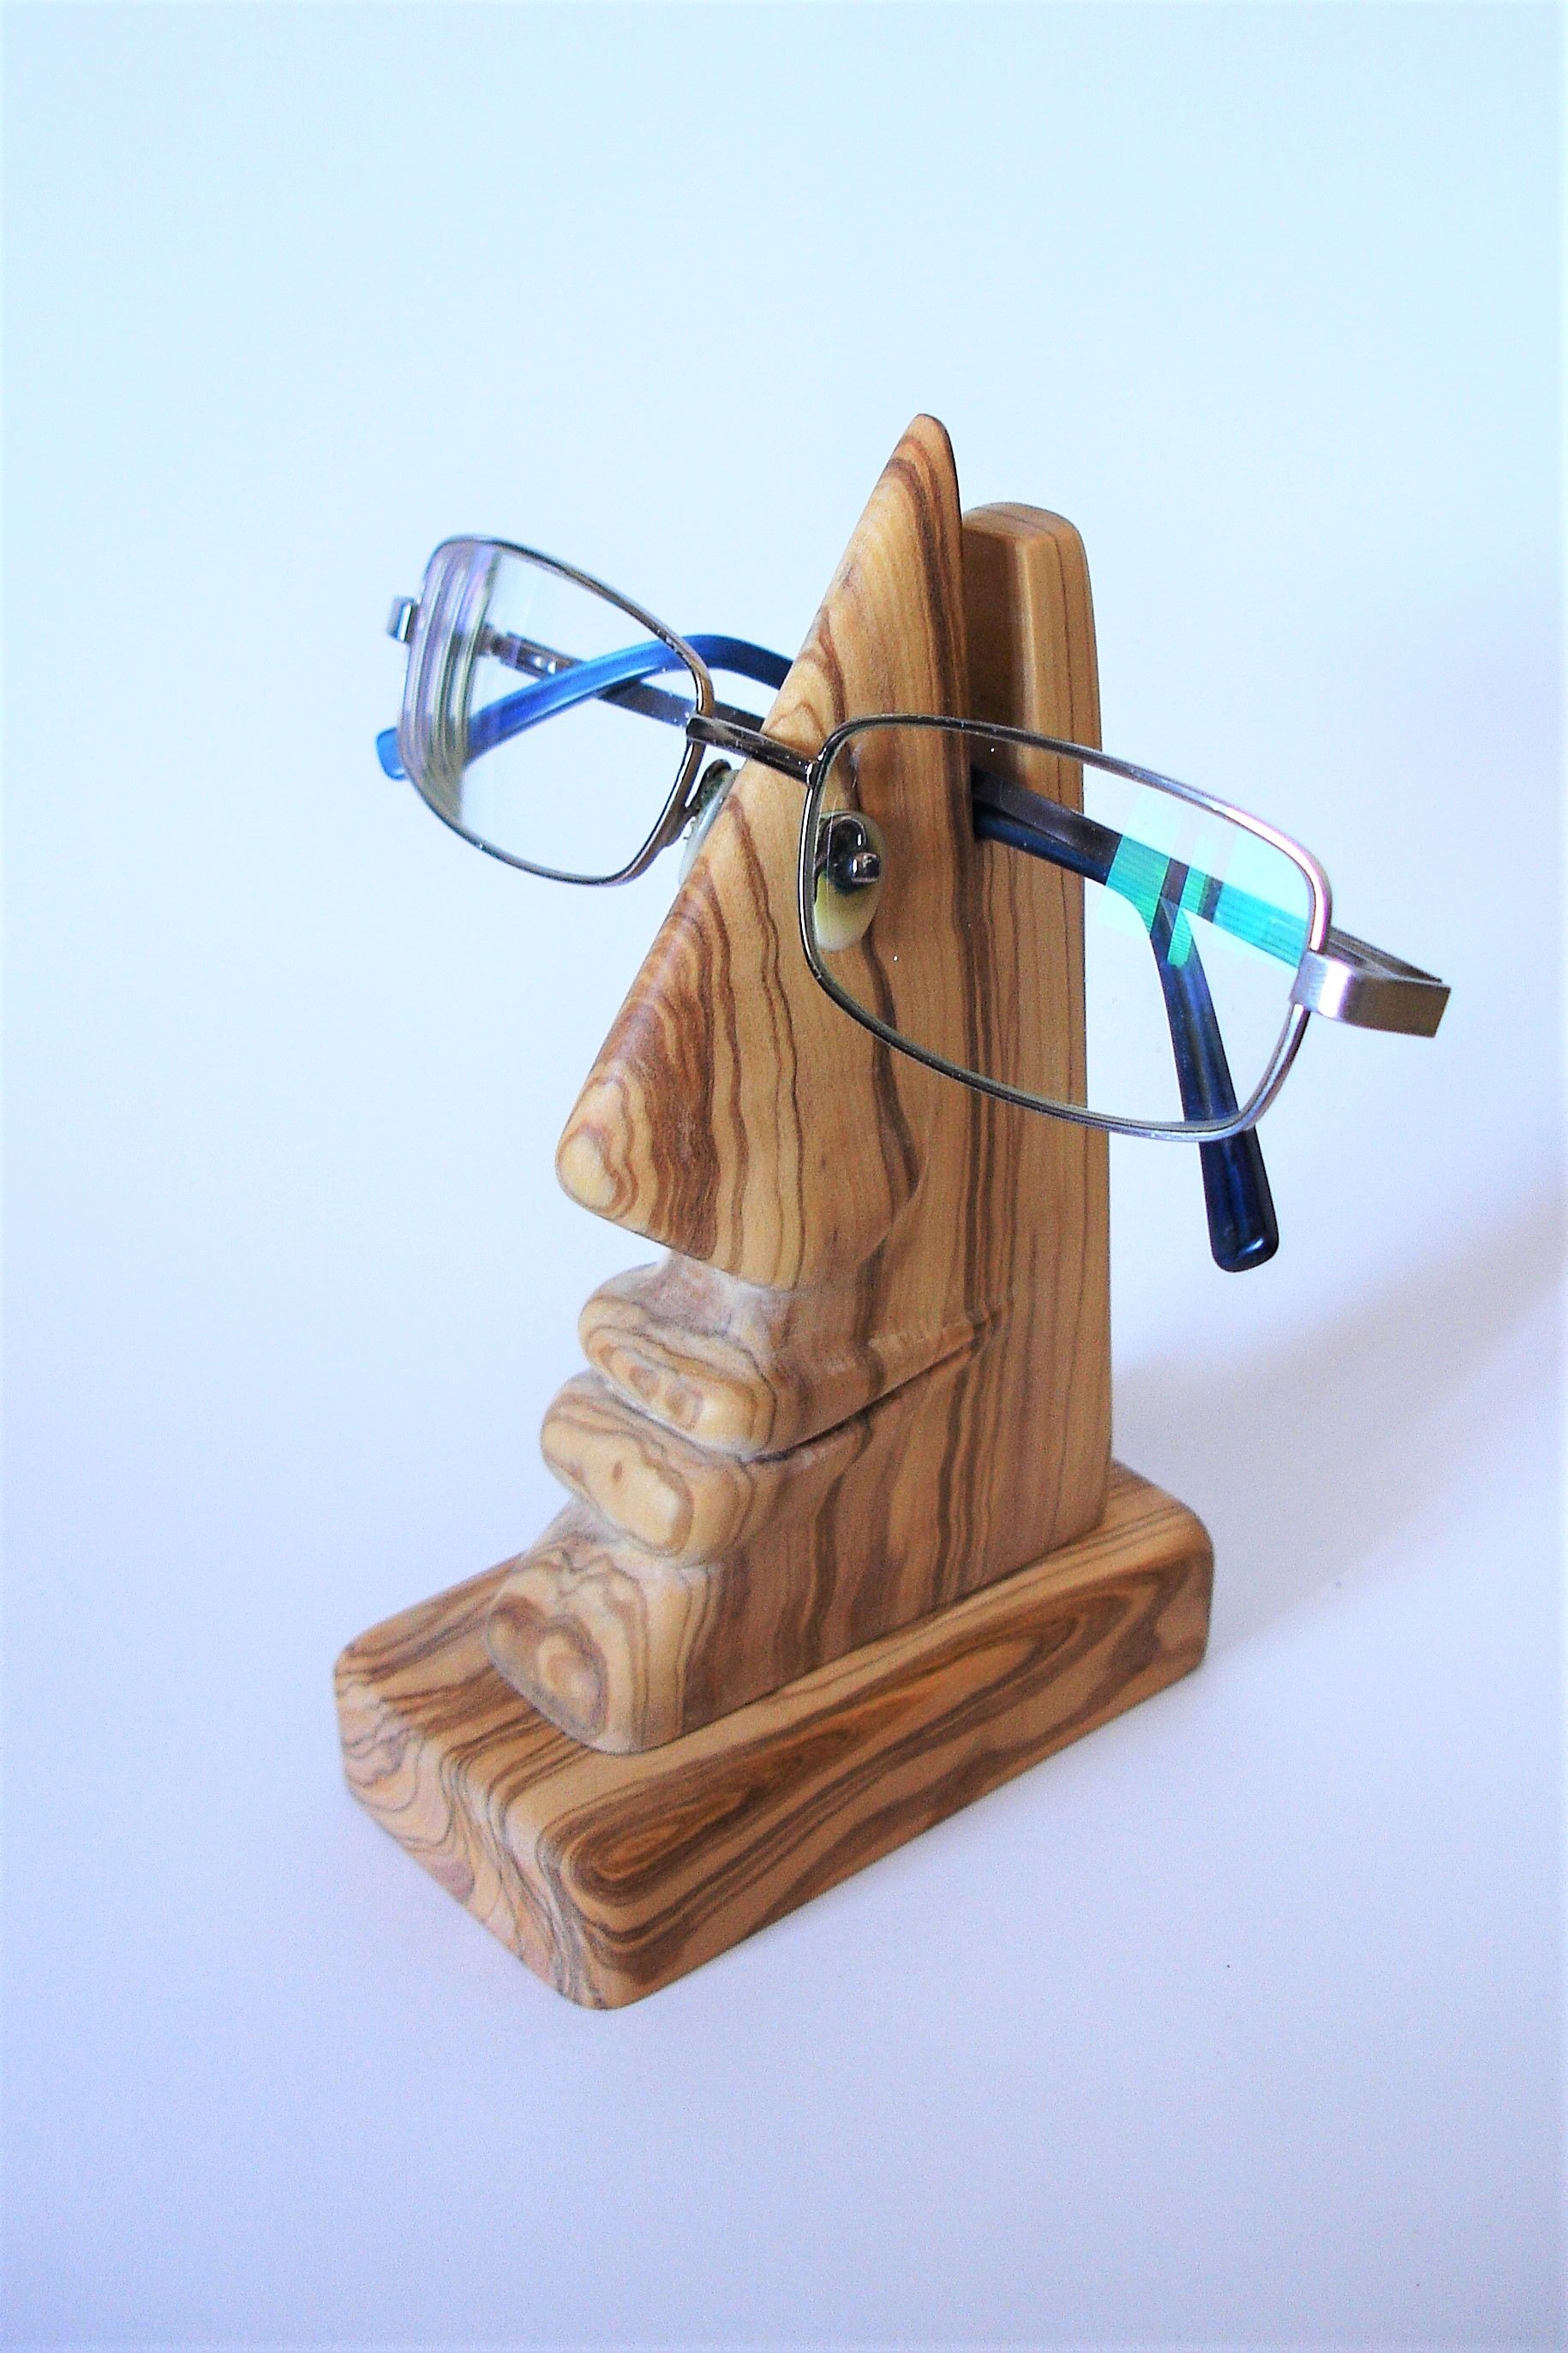 009ab2e15f4 Wooden sculpture made by S-Carving (head eyeglasses holder)